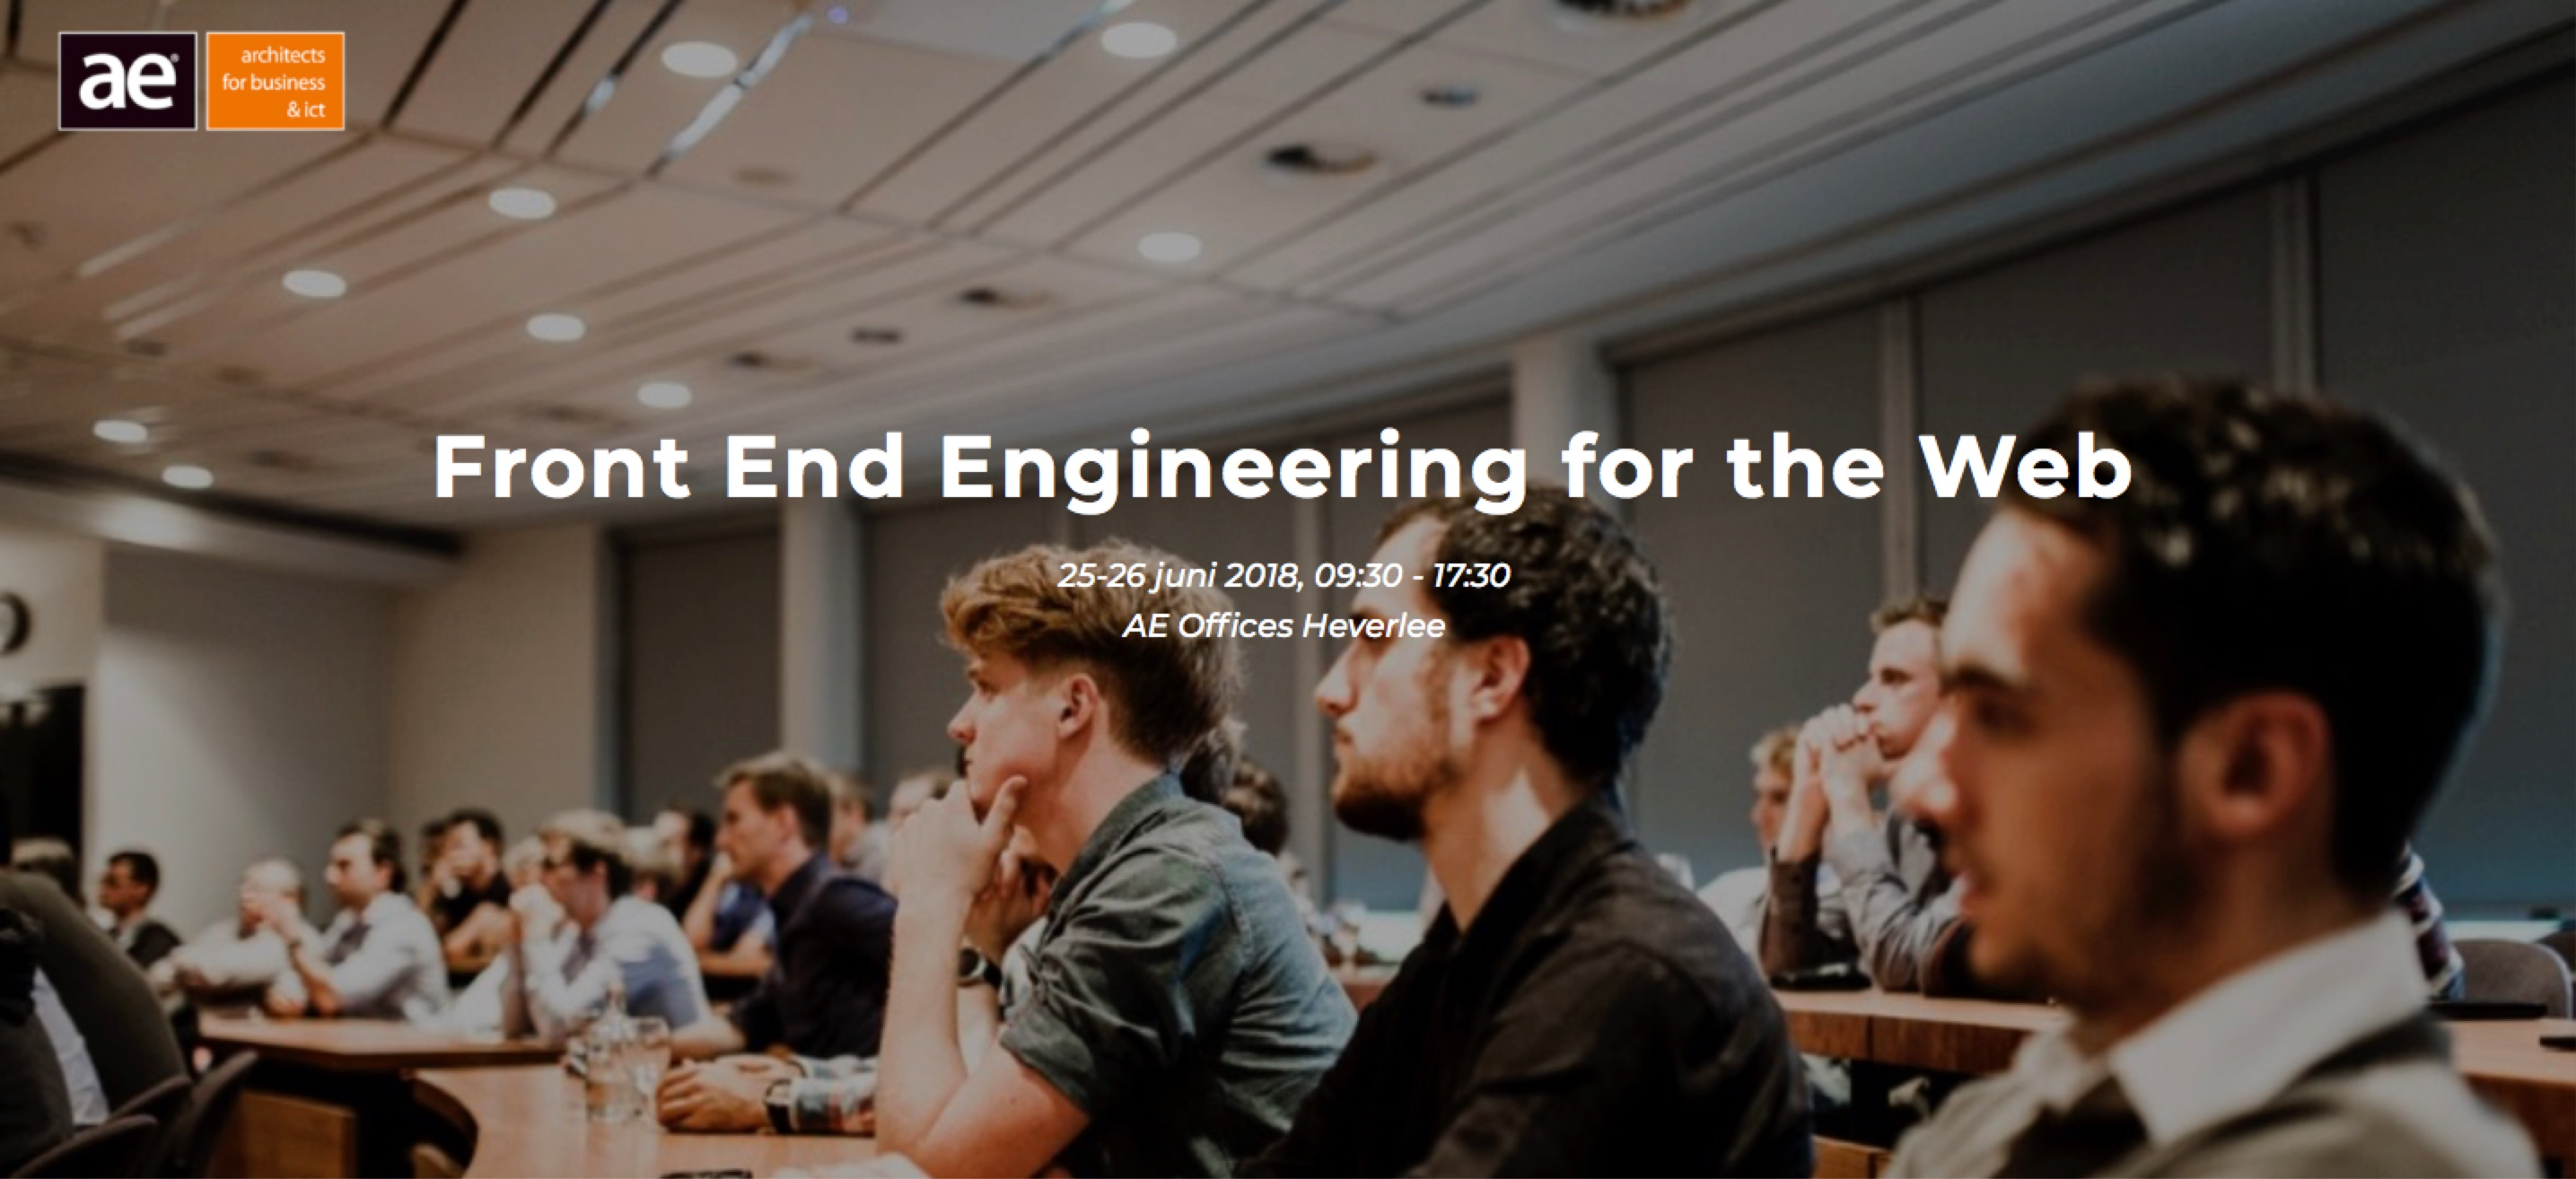 AE opleiding Front end Engineering for the web